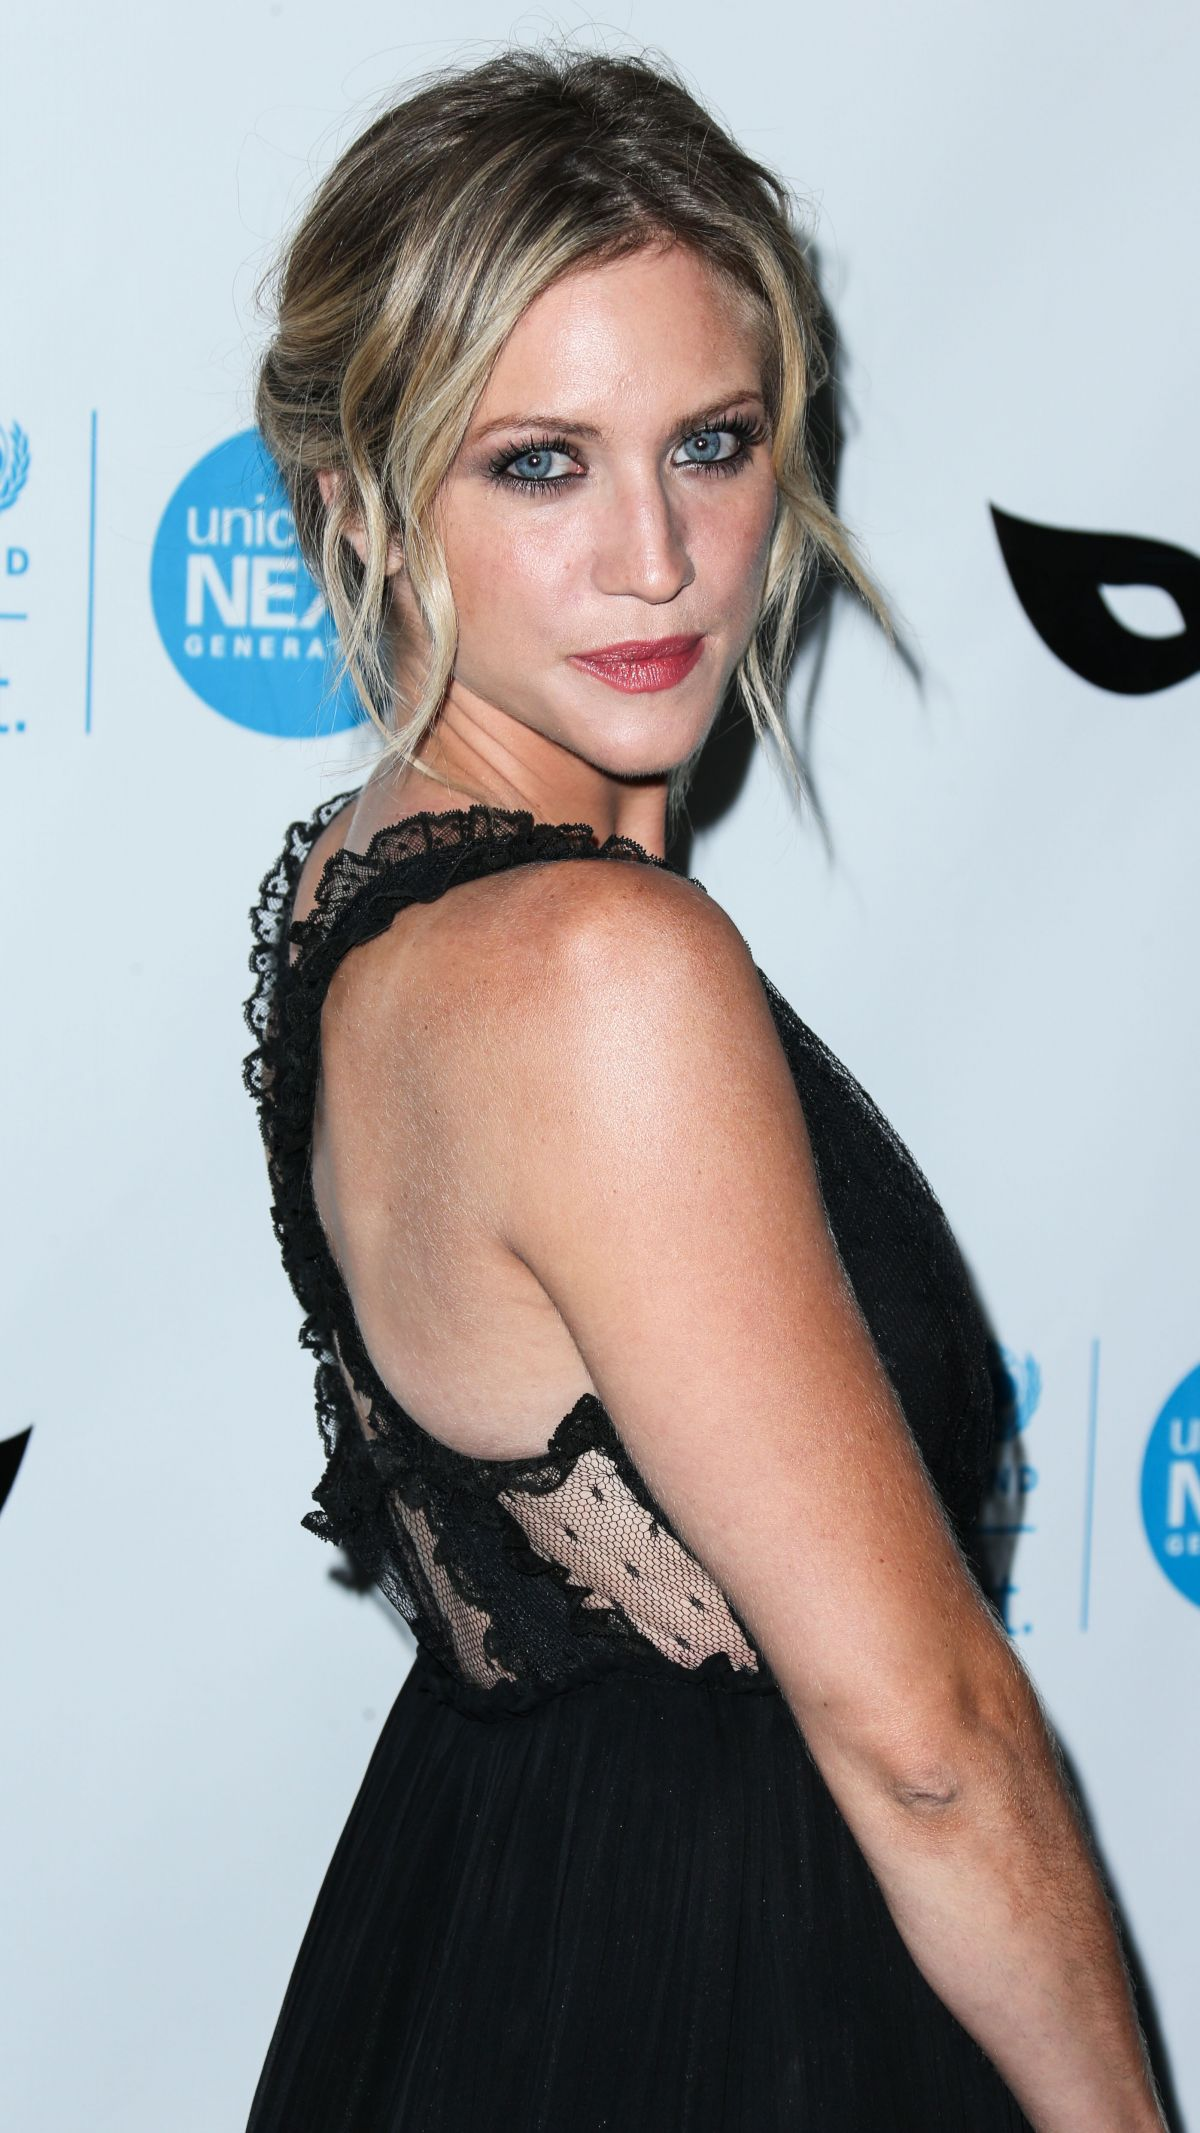 BRITTANY SNOW at Unicef Black & White Masquerade Ball in ... Brittany Snow